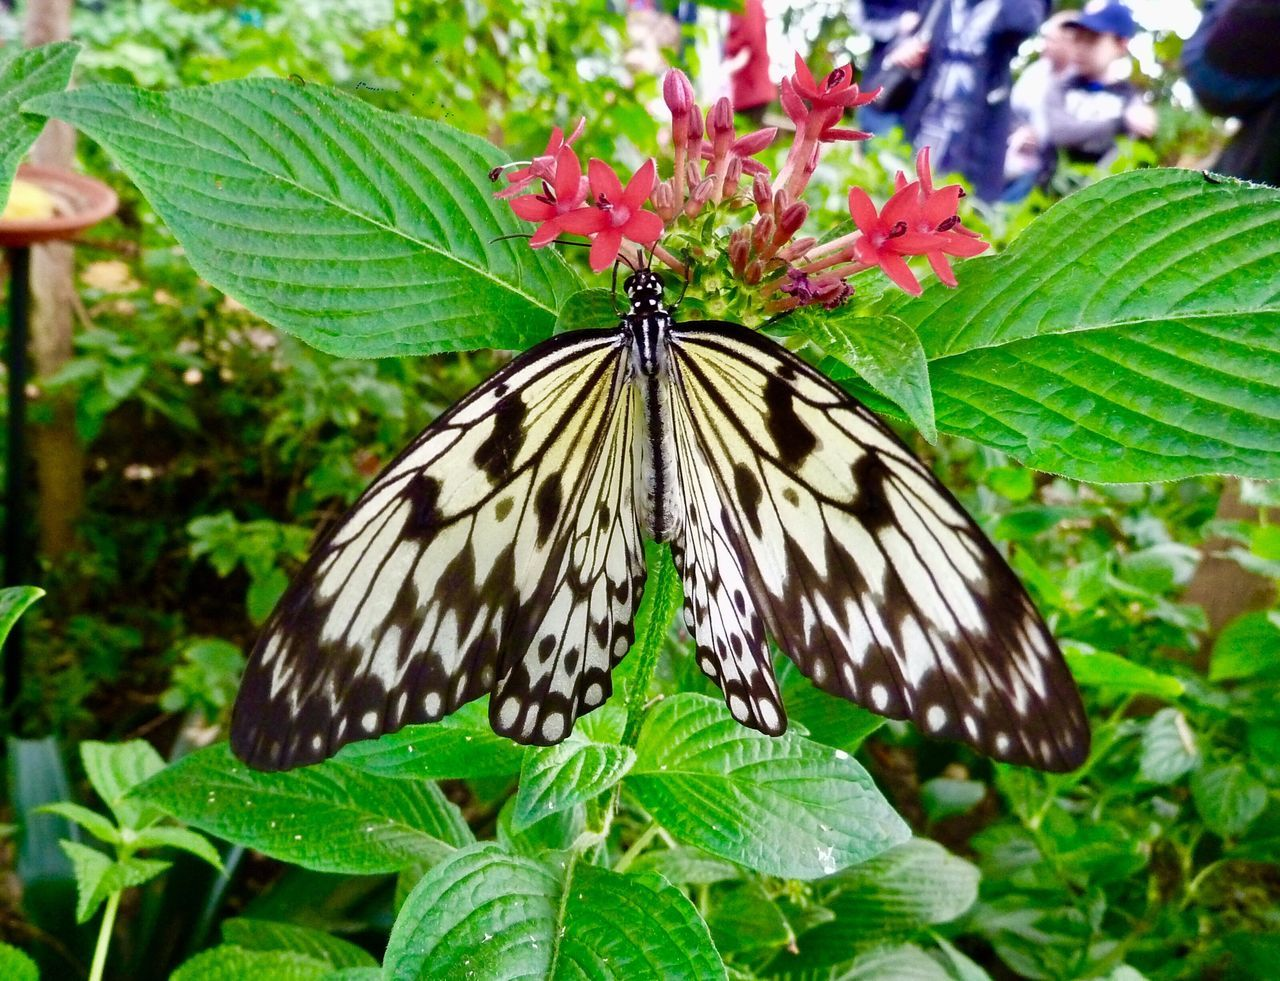 Butterfly Whipsnade Zoo Leaf Butterfly - Insect One Animal Animal Themes Insect Animals In The Wild Green Color Plant Nature Growth Close-up Animal Wildlife Beauty In Nature Day Focus On Foreground Outdoors No People Freshness Animal Markings